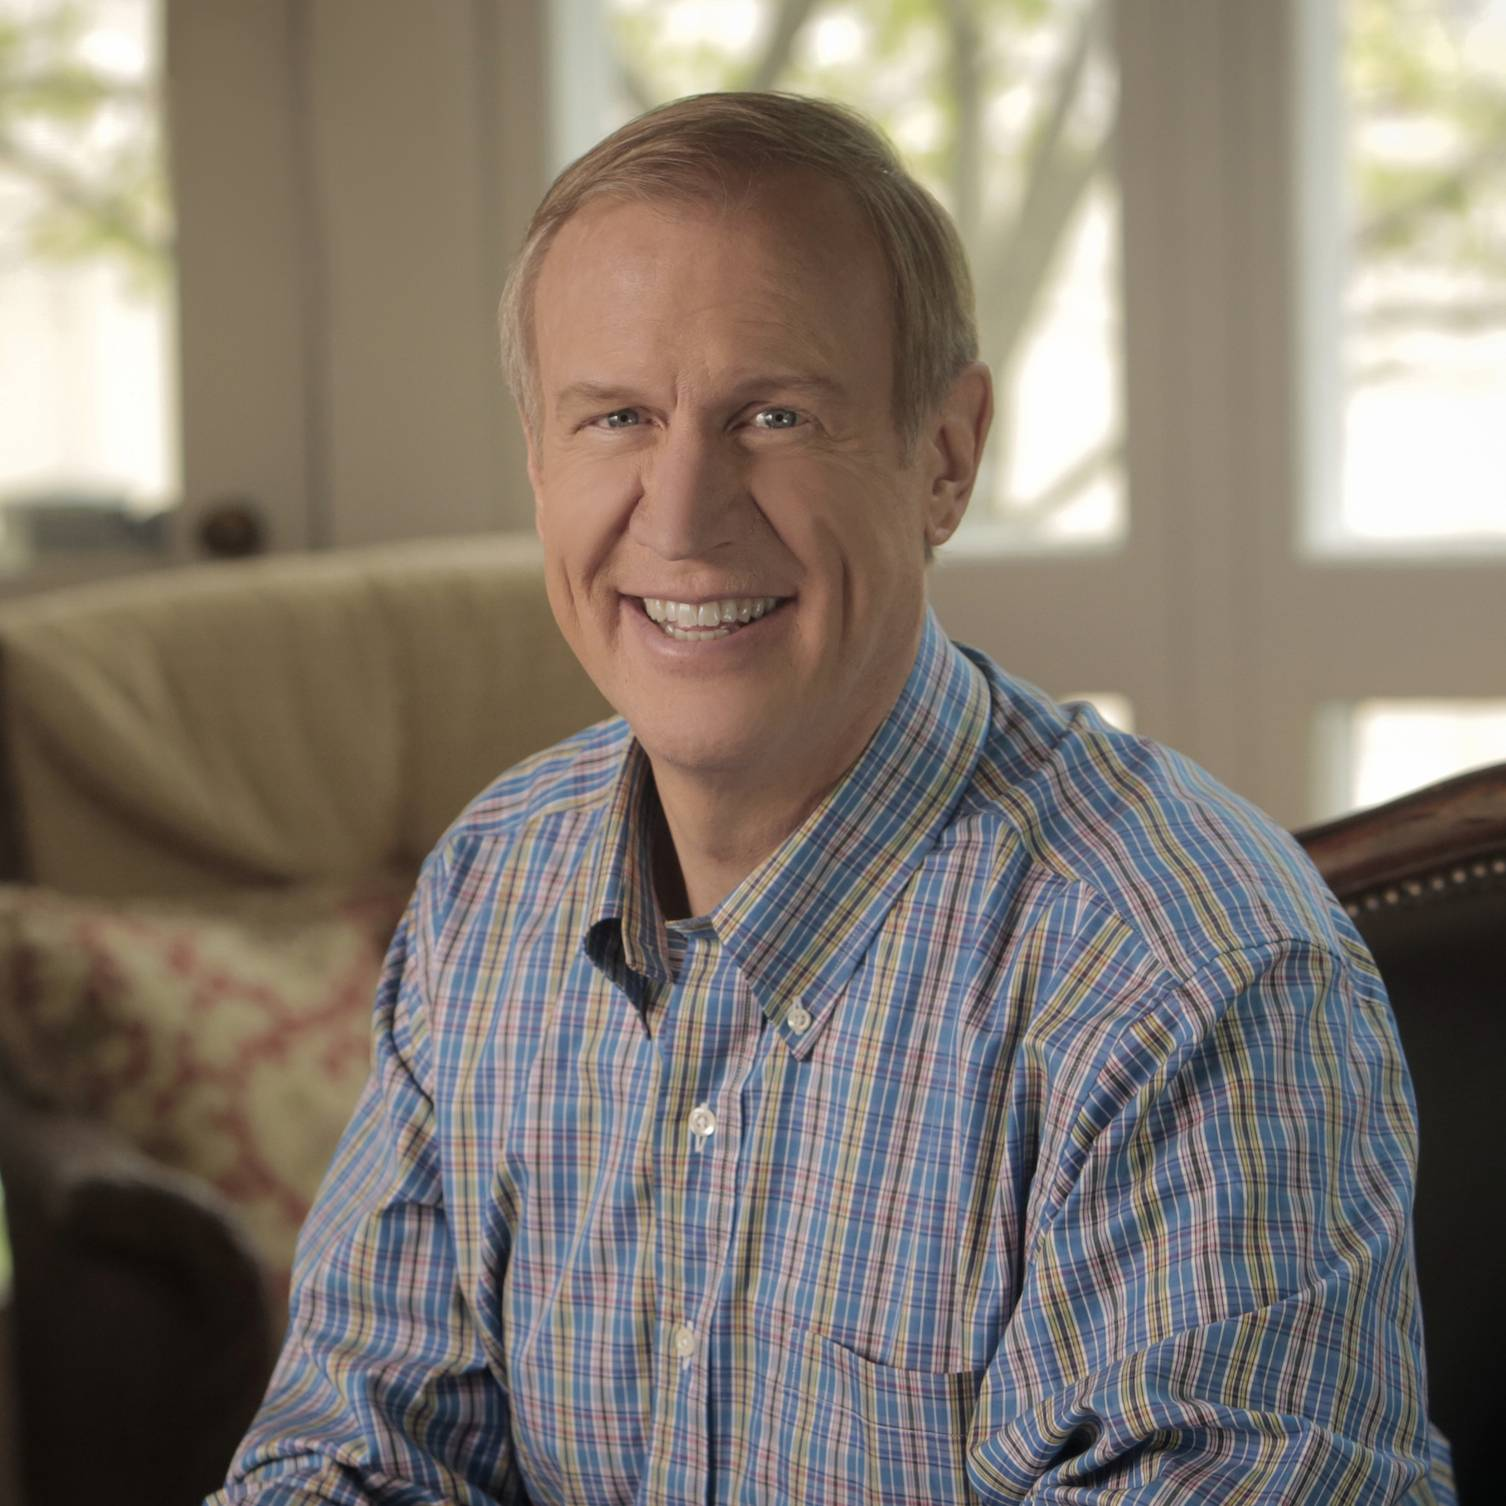 Governor Rauner, running for 1st Appellate District